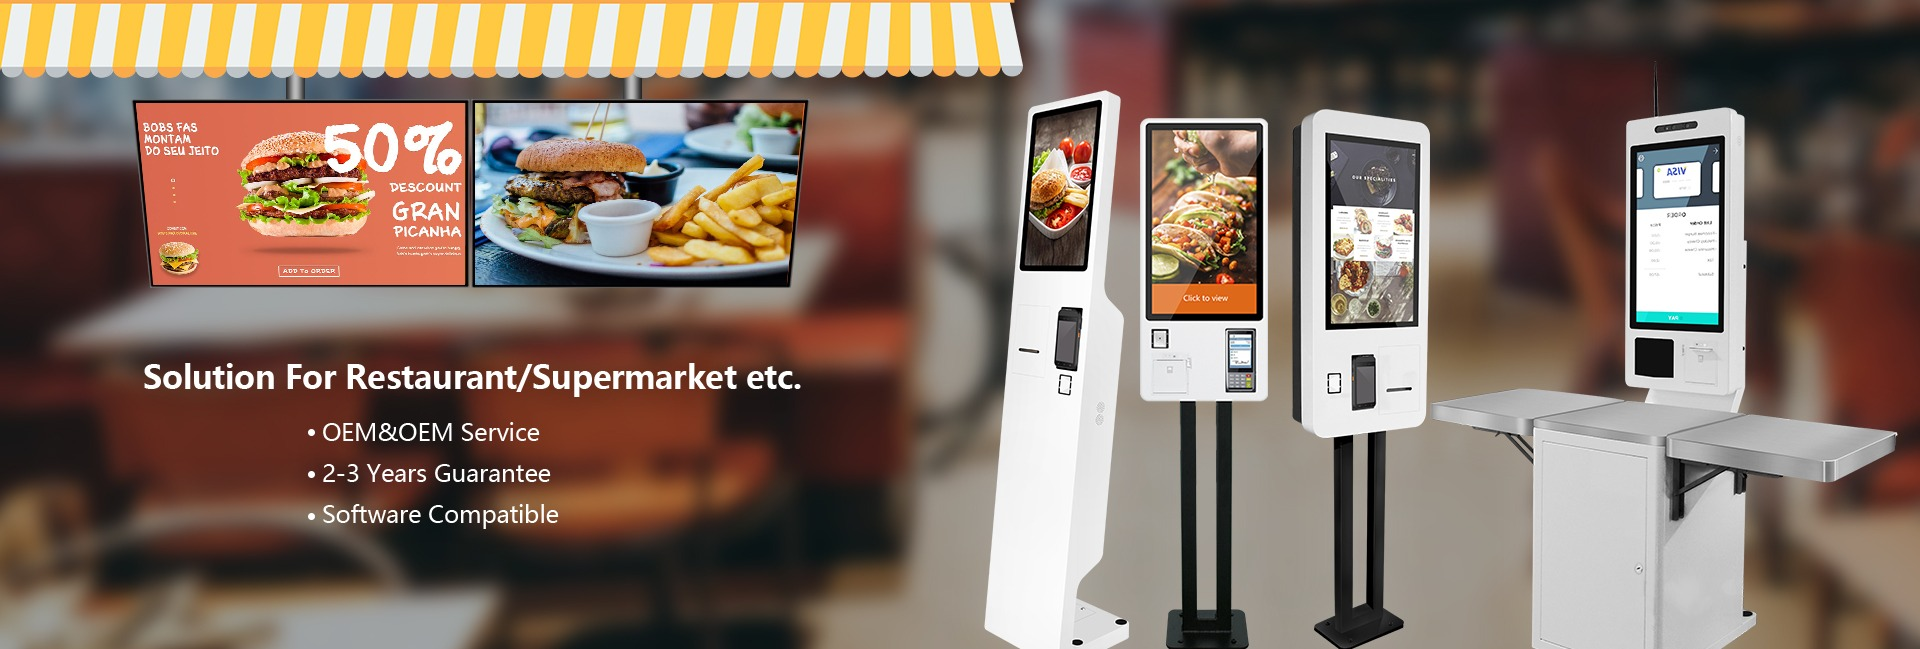 ordering systems for restaurants Digital Screens and self order kiosk